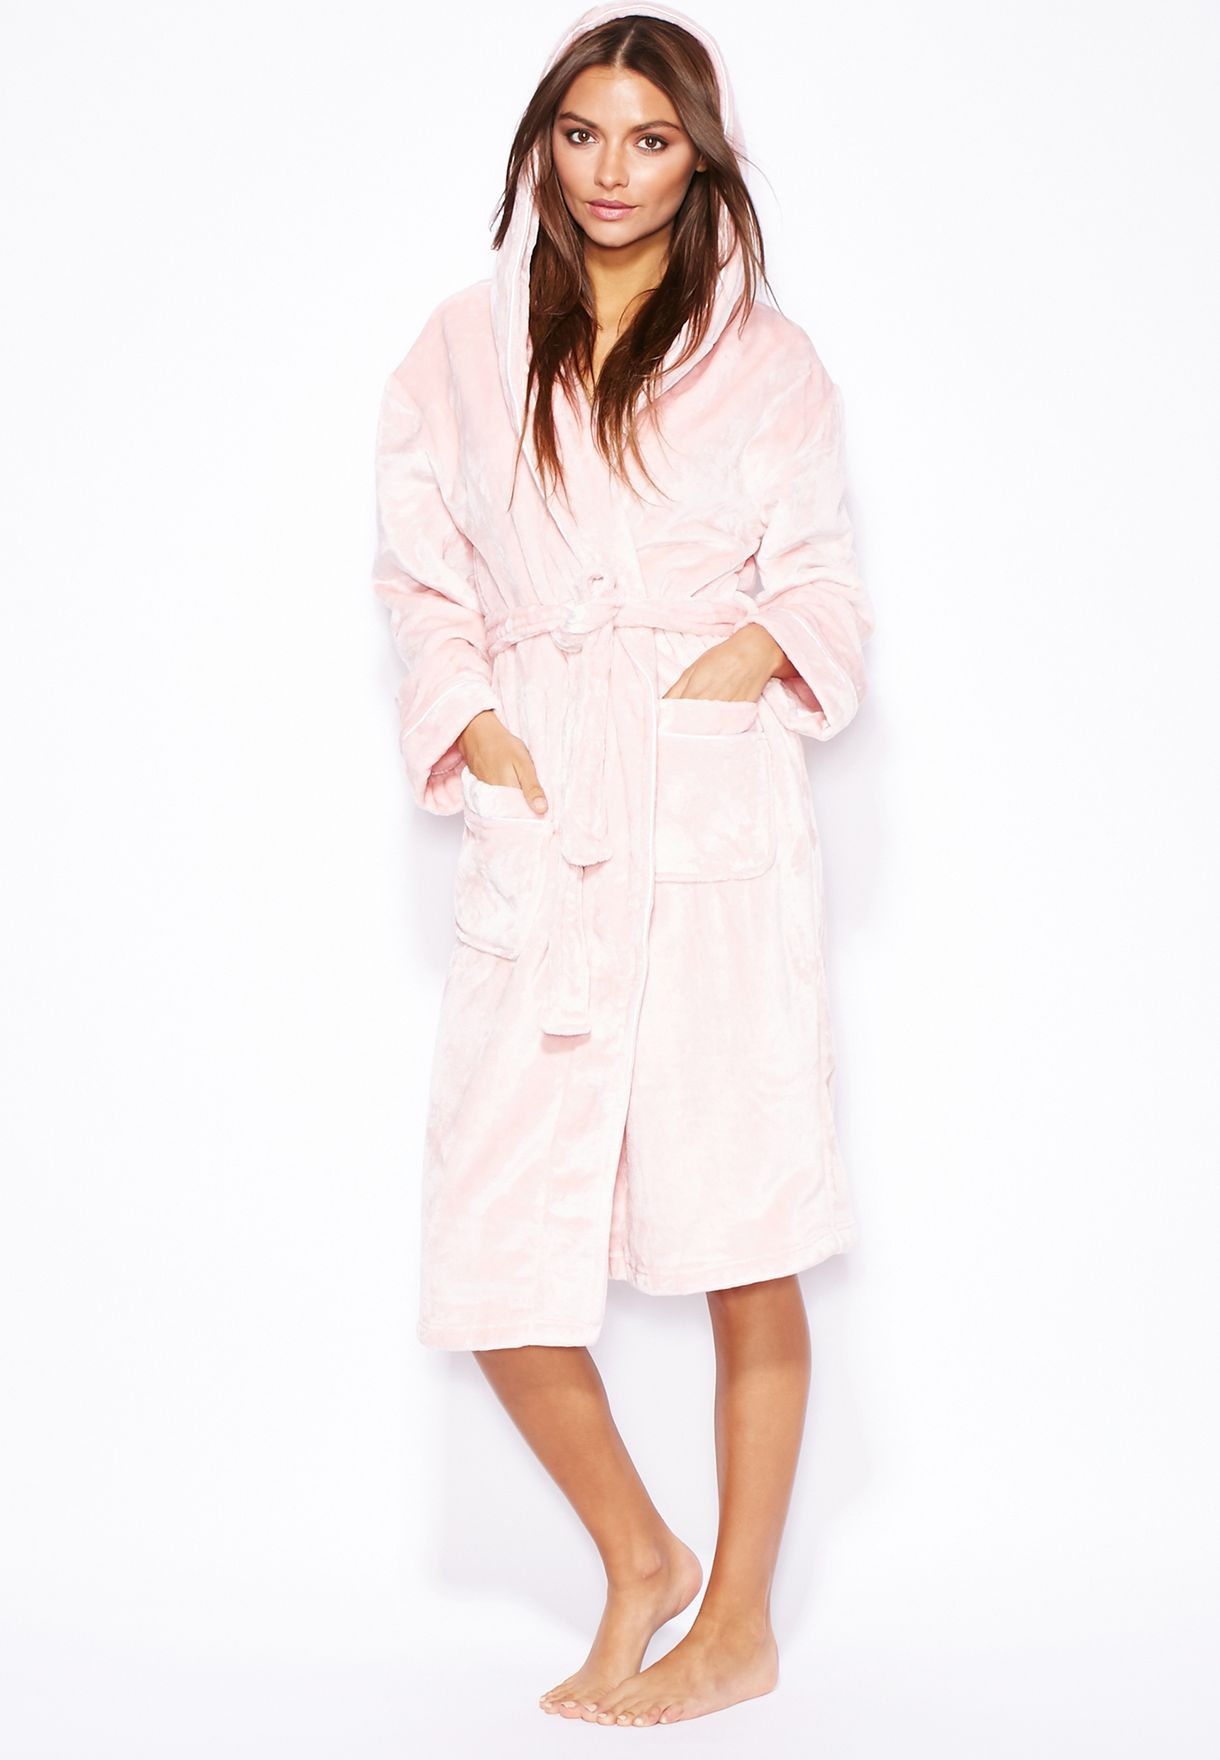 8e3f7c9850 Shop Dorothy Perkins pink Tie Waist Hooded Robe for Women in Qatar -  DO860AT75MHW